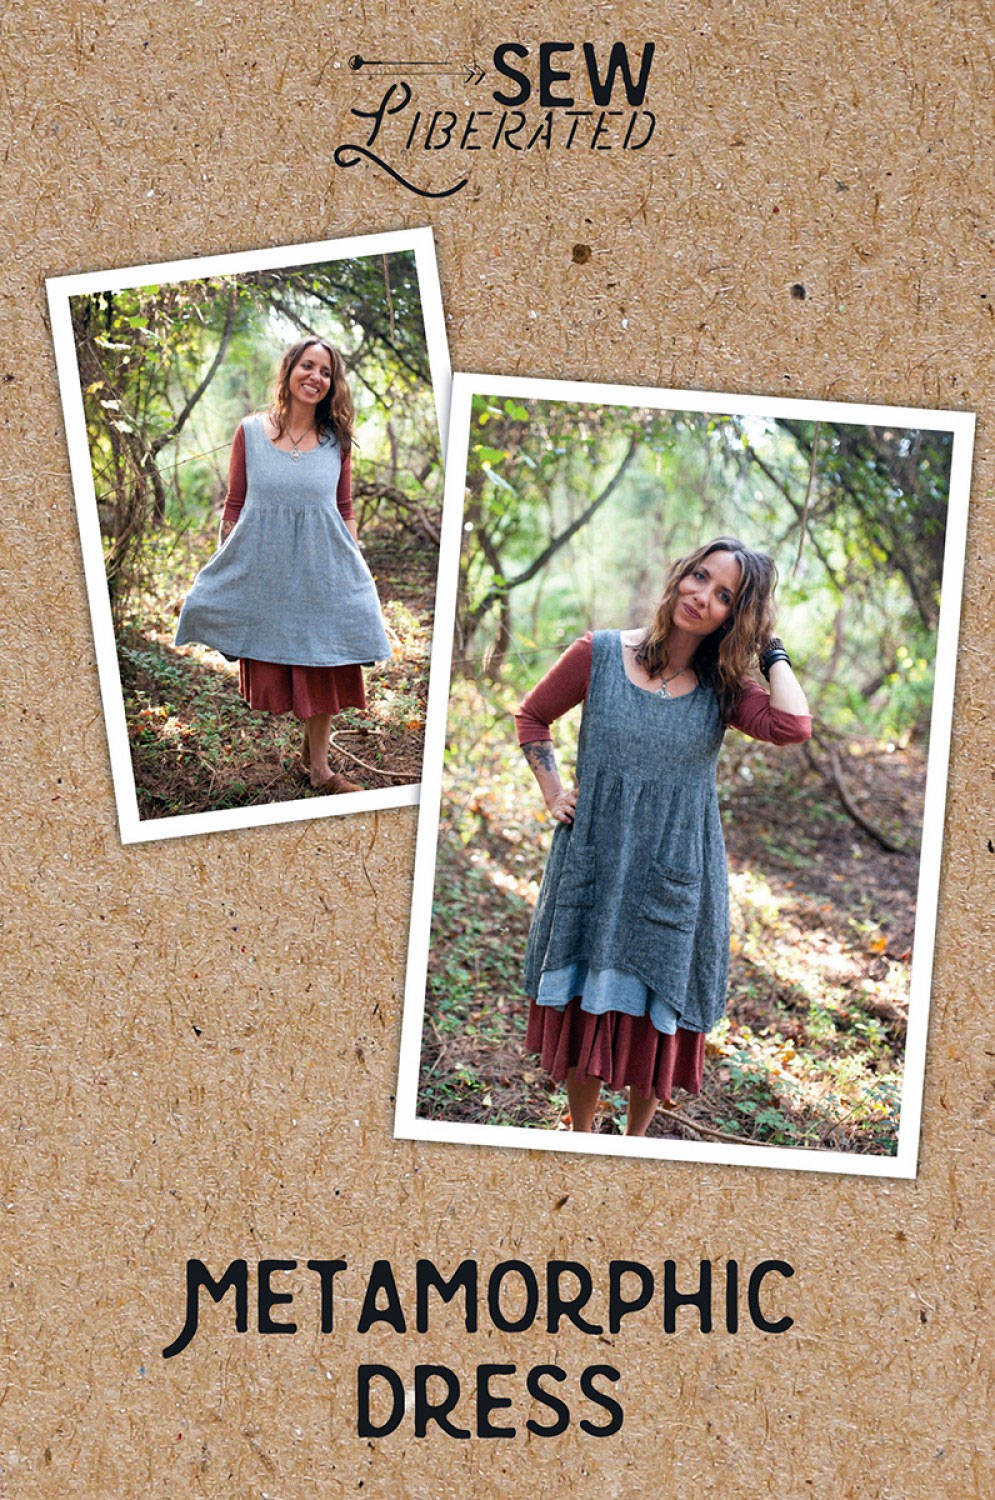 Metamorphic-dress-sewing-pattern-Sew-Liberated-front